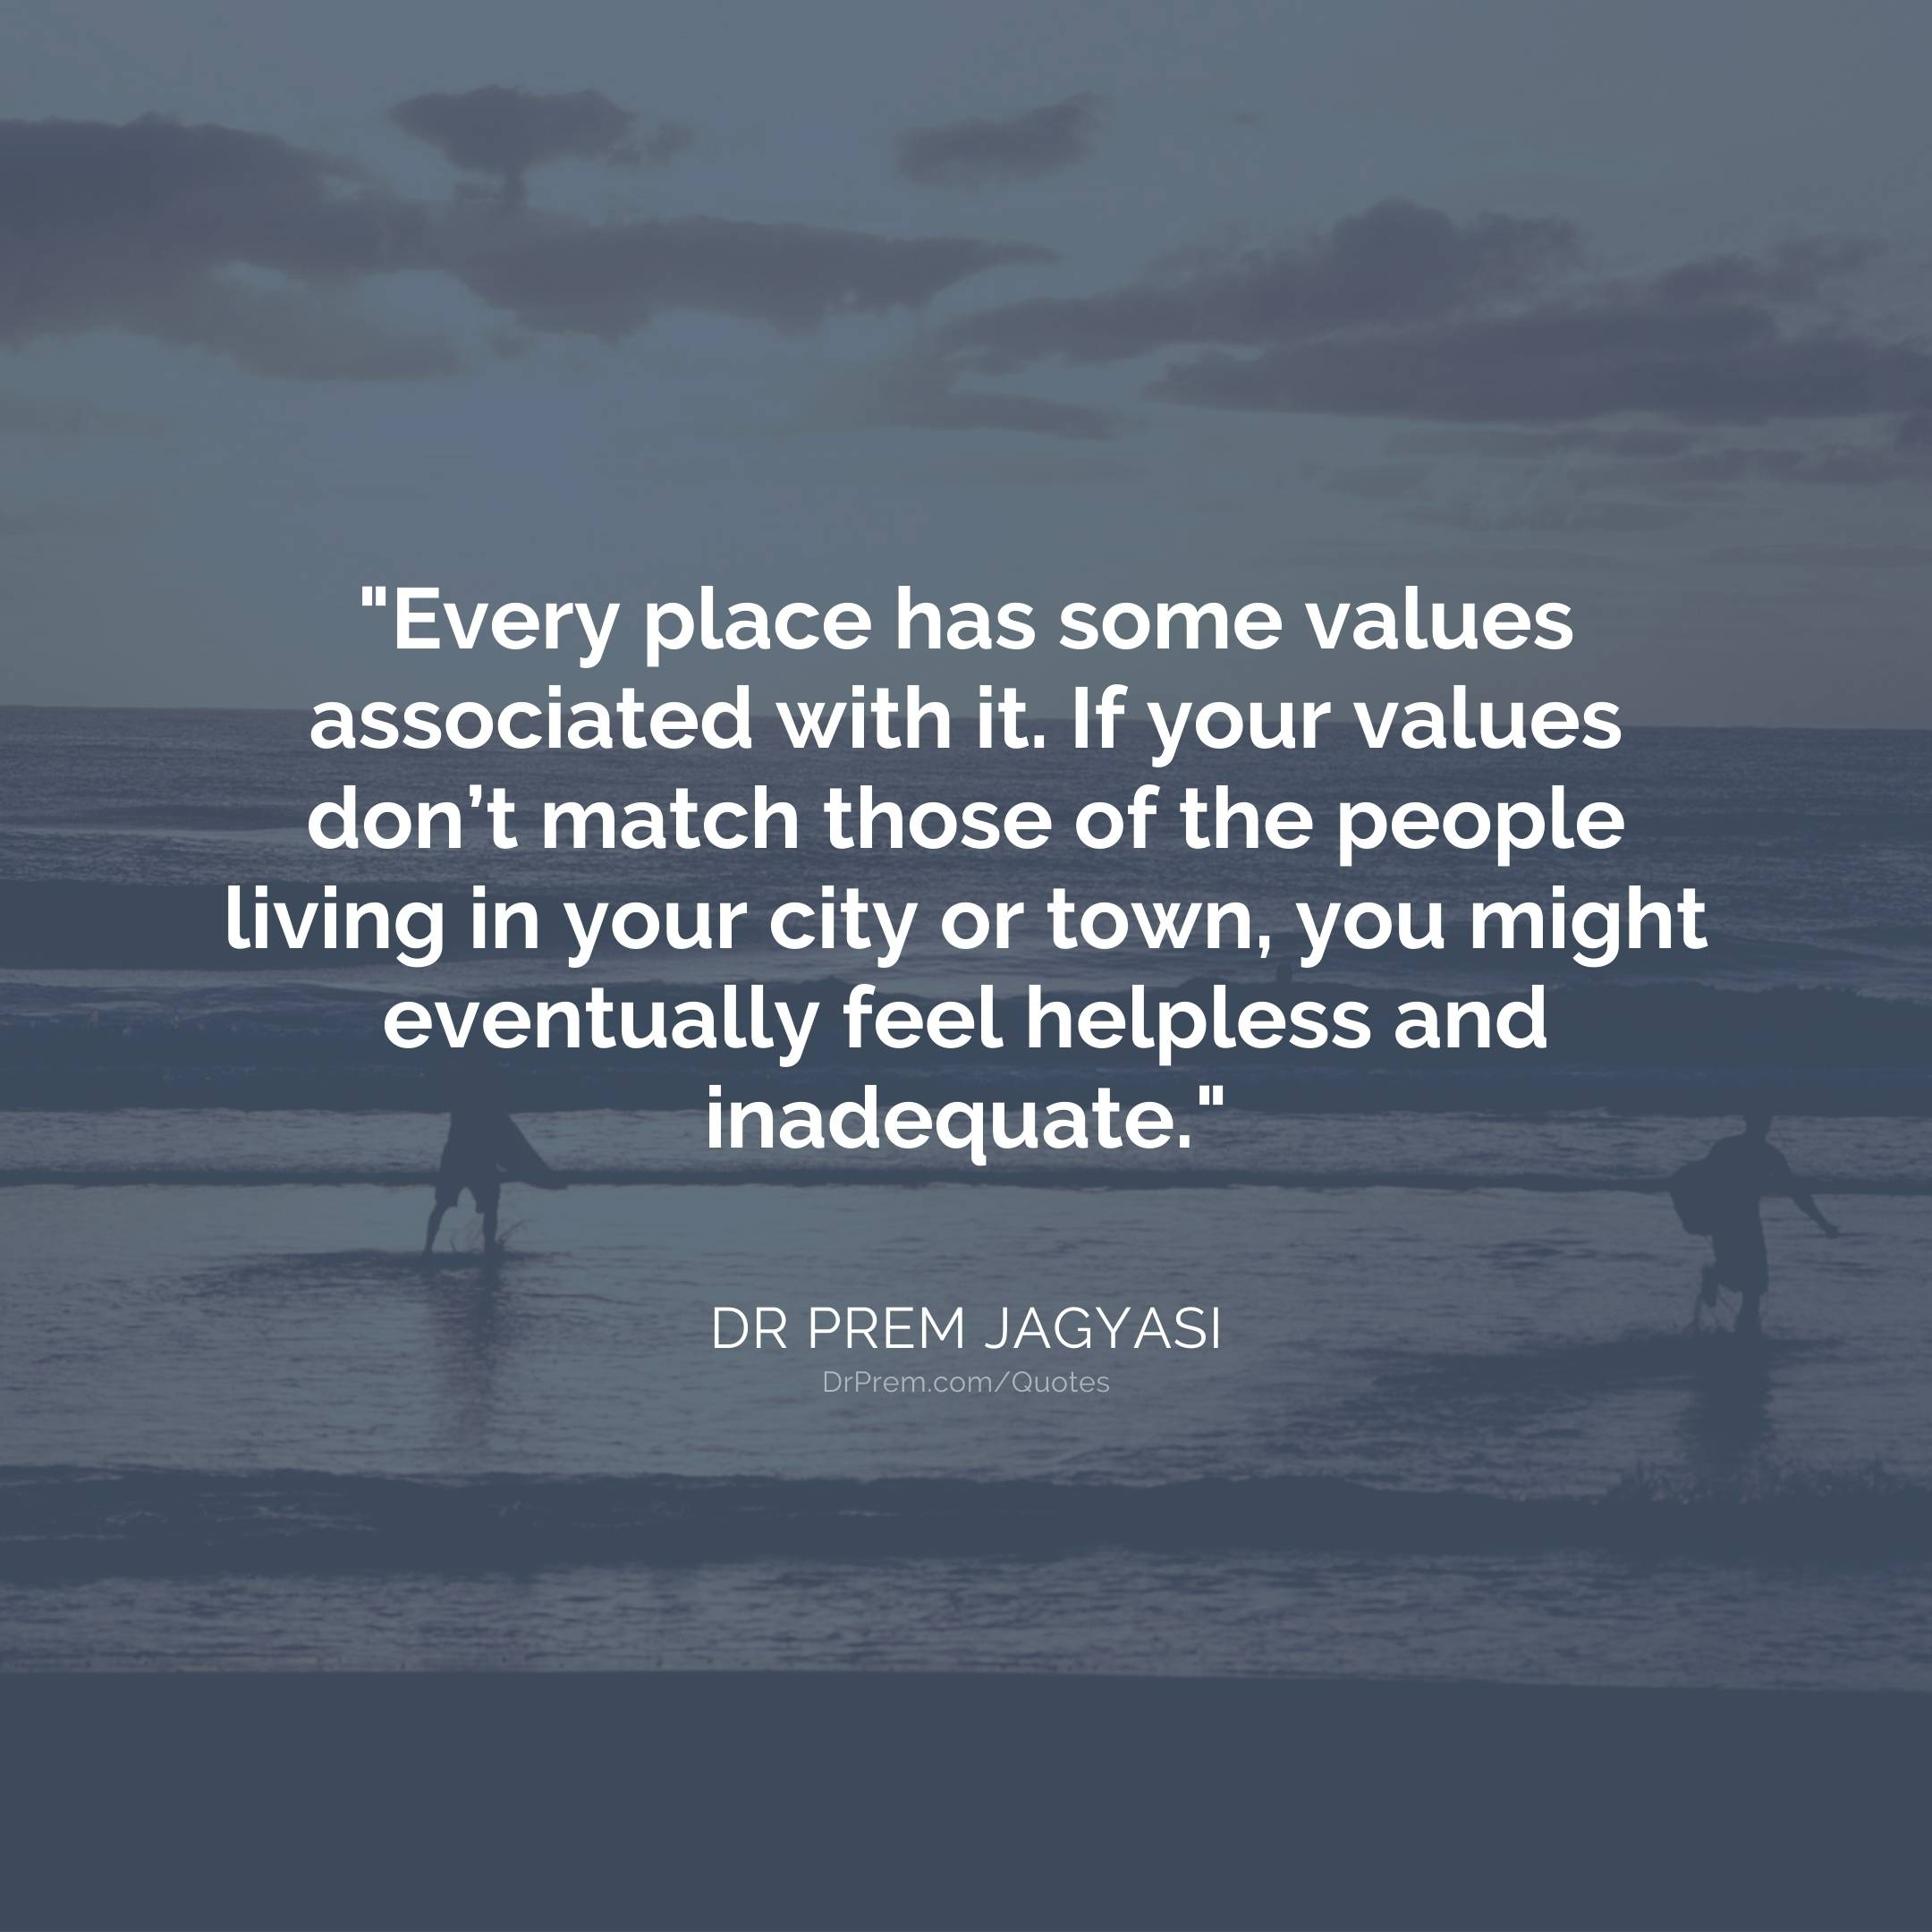 Every place has some values associated with it. If your values-Dr Prem Jagyasi Quote